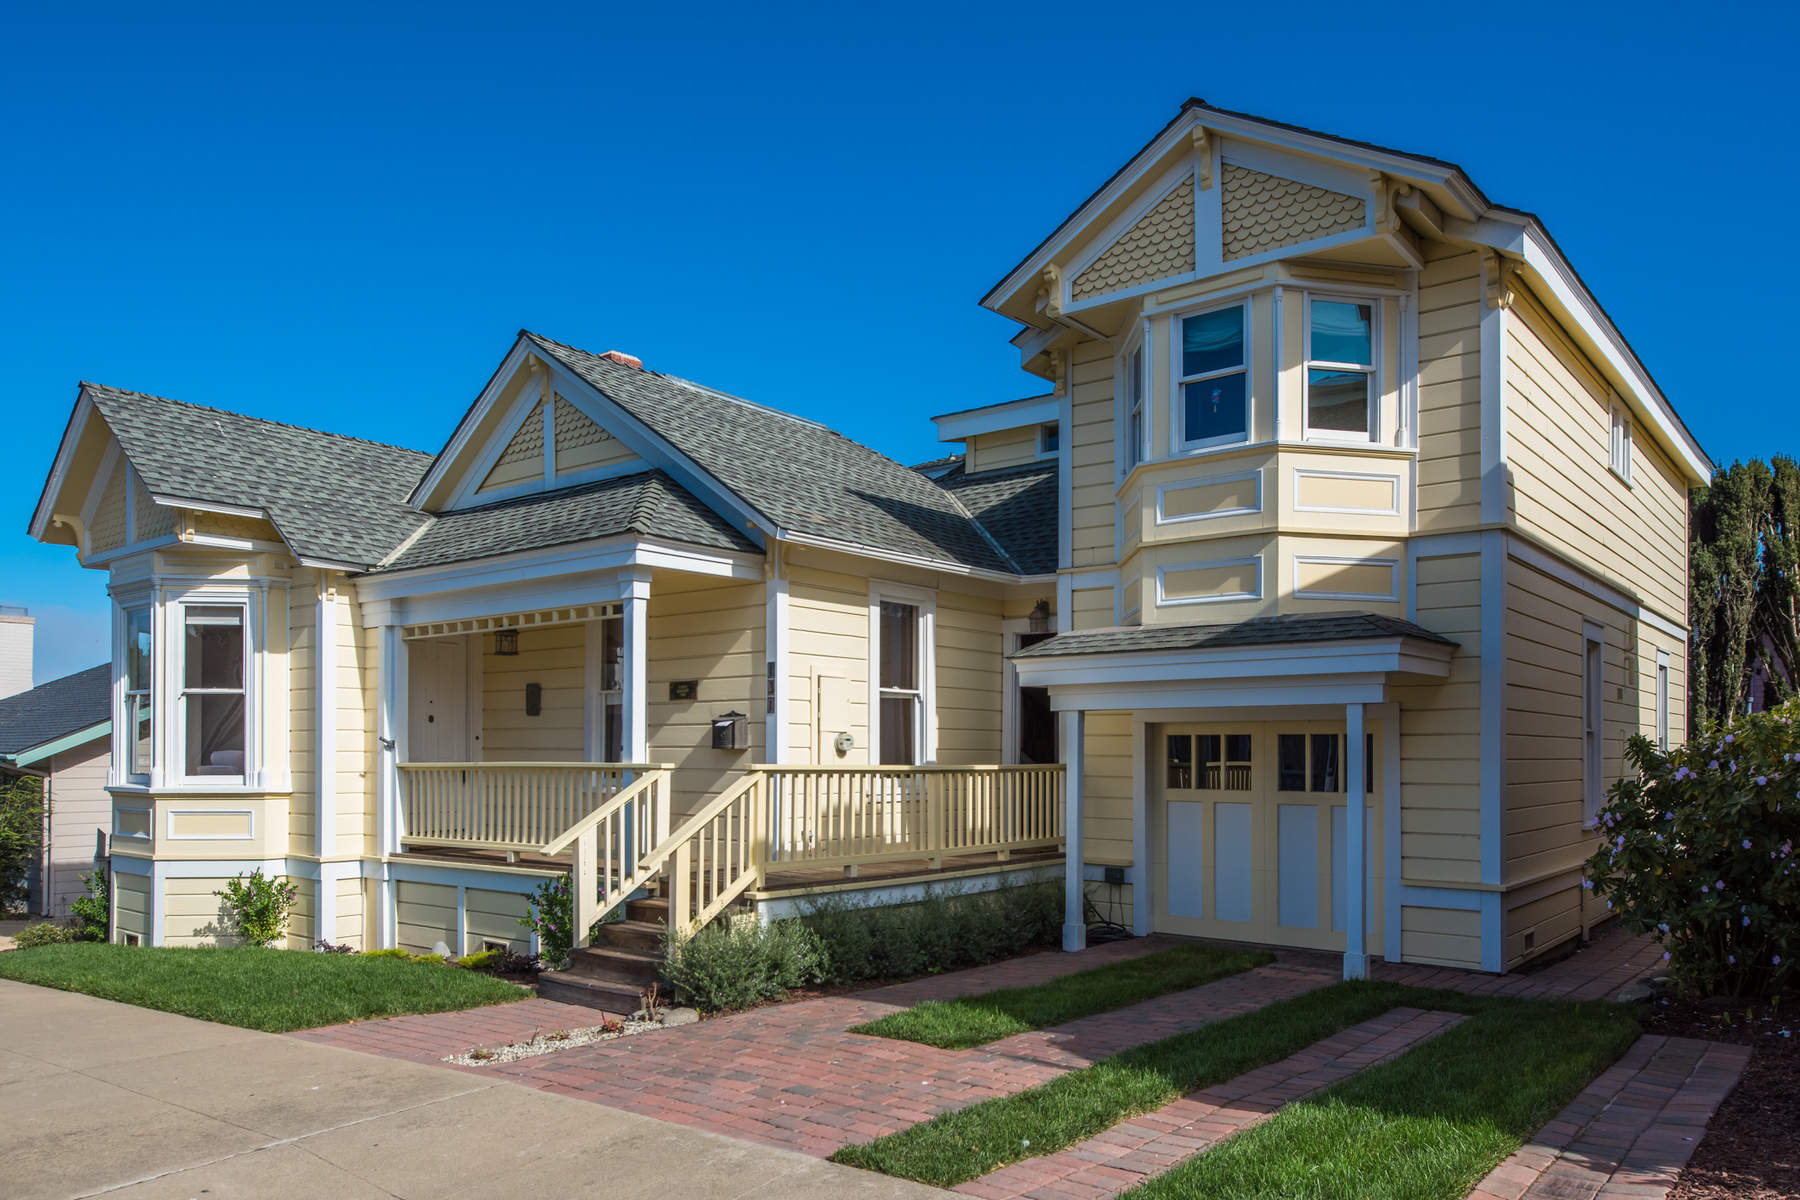 Single Family Home for Sale at Historic Victorian Estate 131 Fountain Avenue Pacific Grove, California 93950 United States